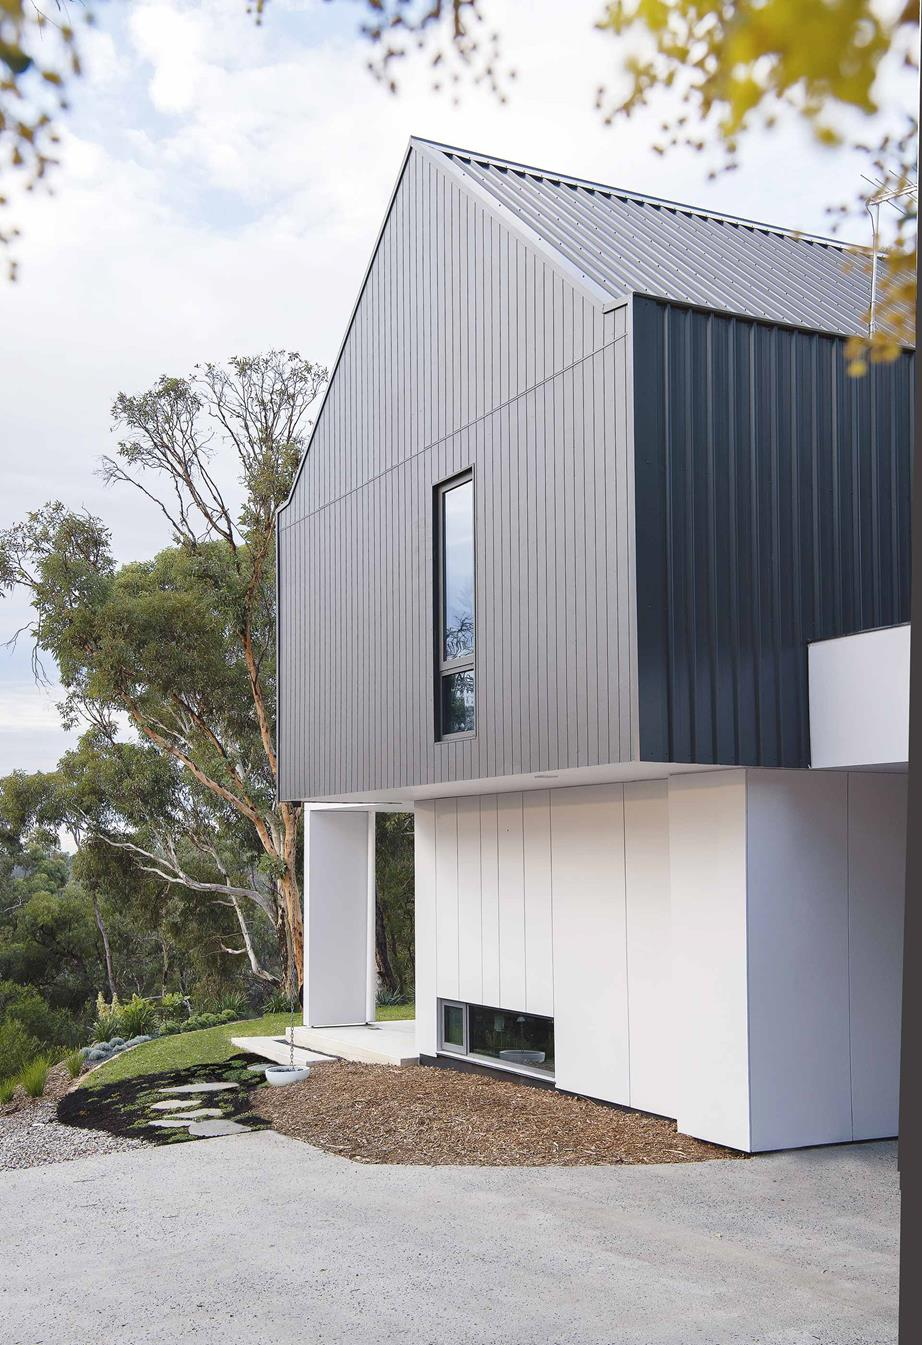 Exterior  The roof and first floor of Izabela and Lukasz Katafoni's Perth home are clad with  Colorbond  'Trimdek' in Monument, while the gable wall is clad in Scyon 'Axon' from  James Hardie  in the same colour. Scyon 'Matrix' cladding in  British Paints  Grey Spirit is used on the ground floor. The concrete paving was hand-poured by the couple.